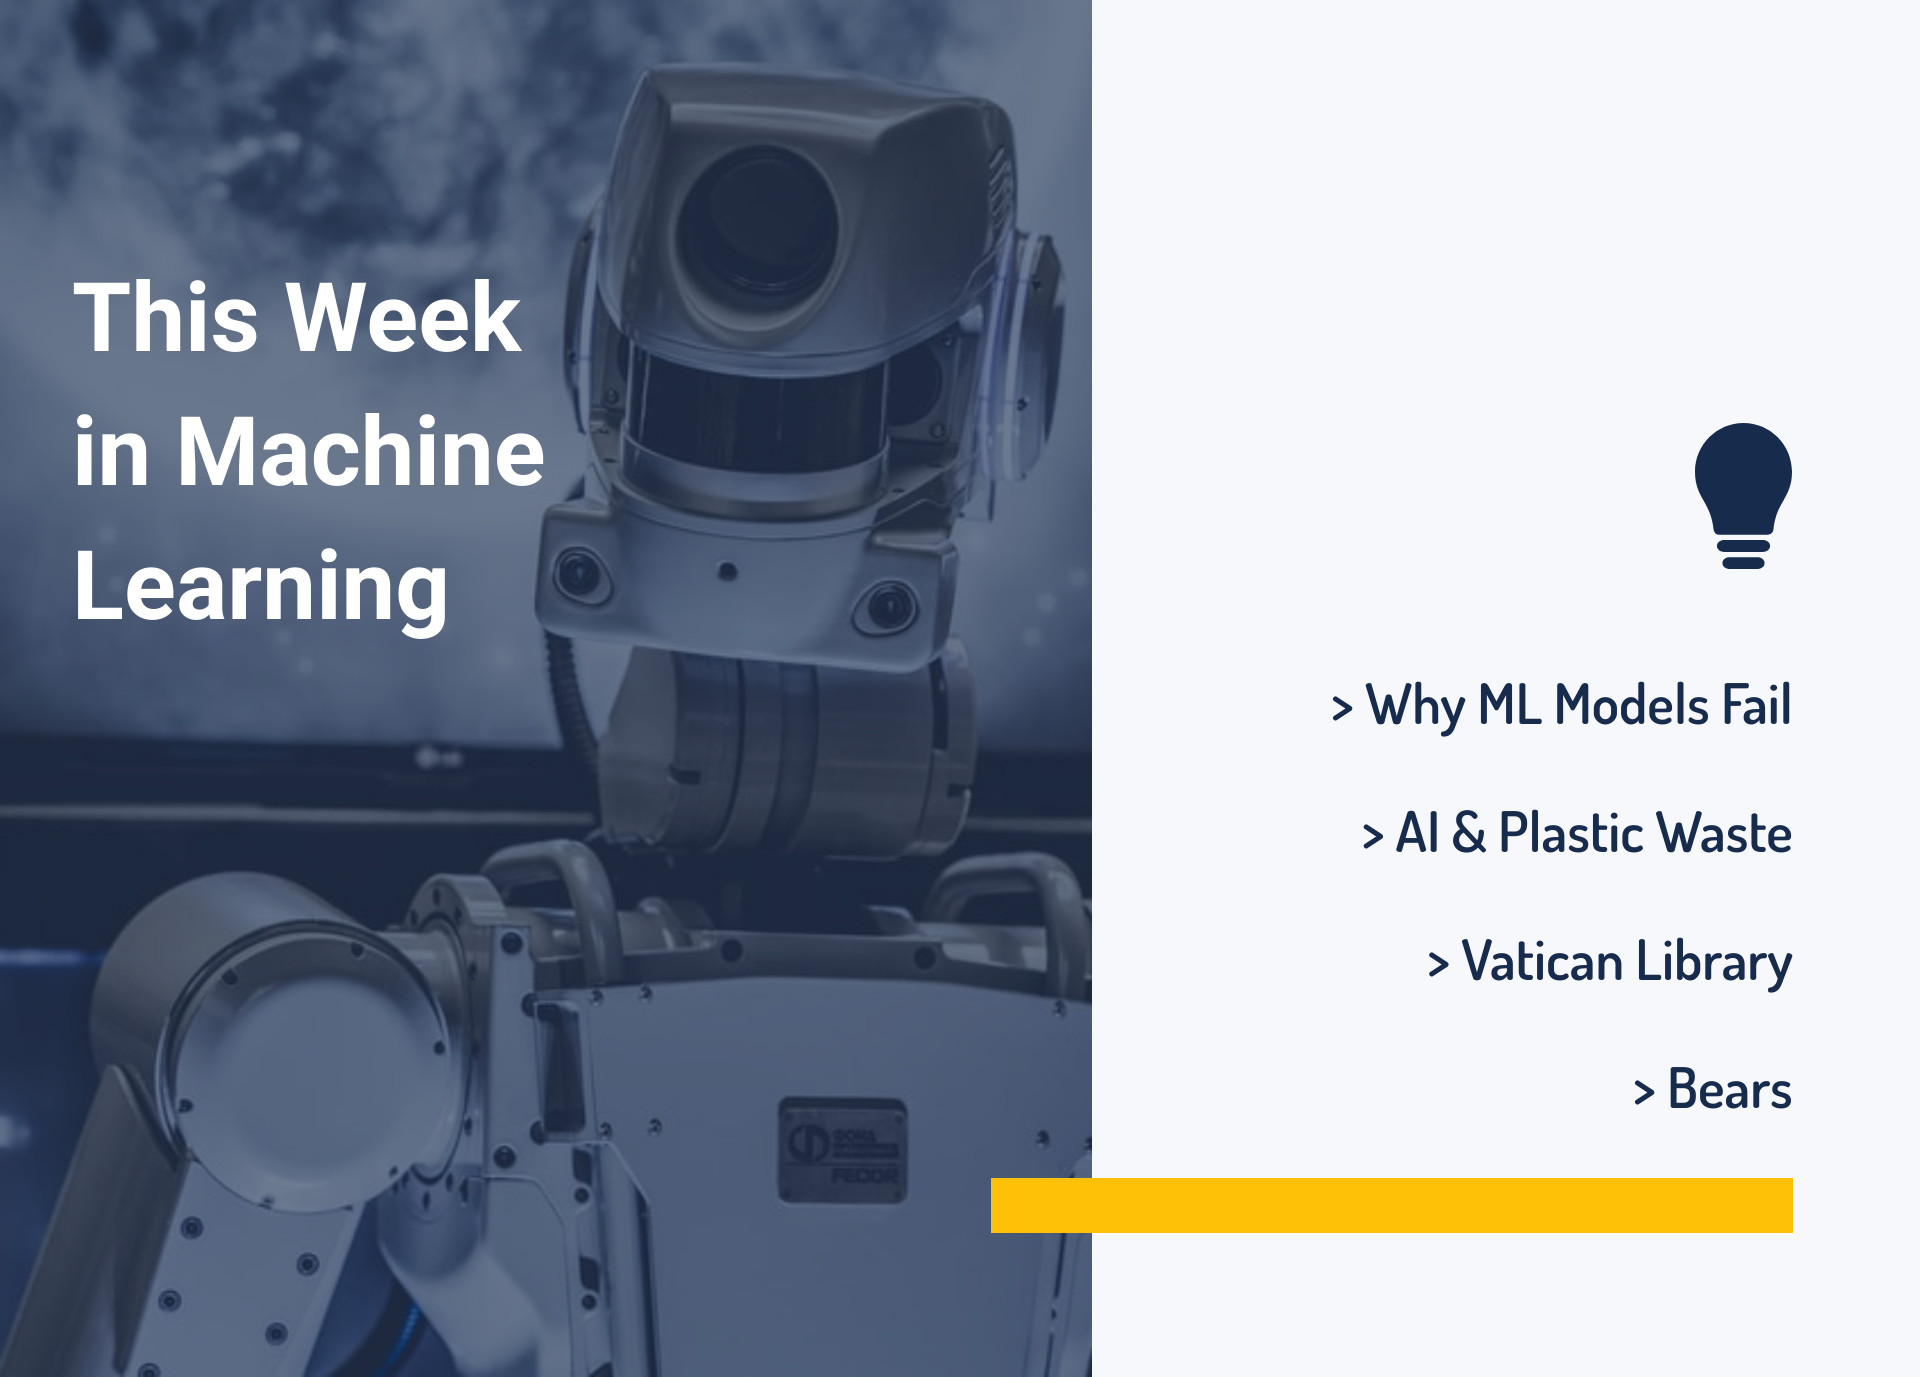 This Week in Machine Learning: Why ML Models Fail, AI & Plastic Waste, Vatican Library, and Bears